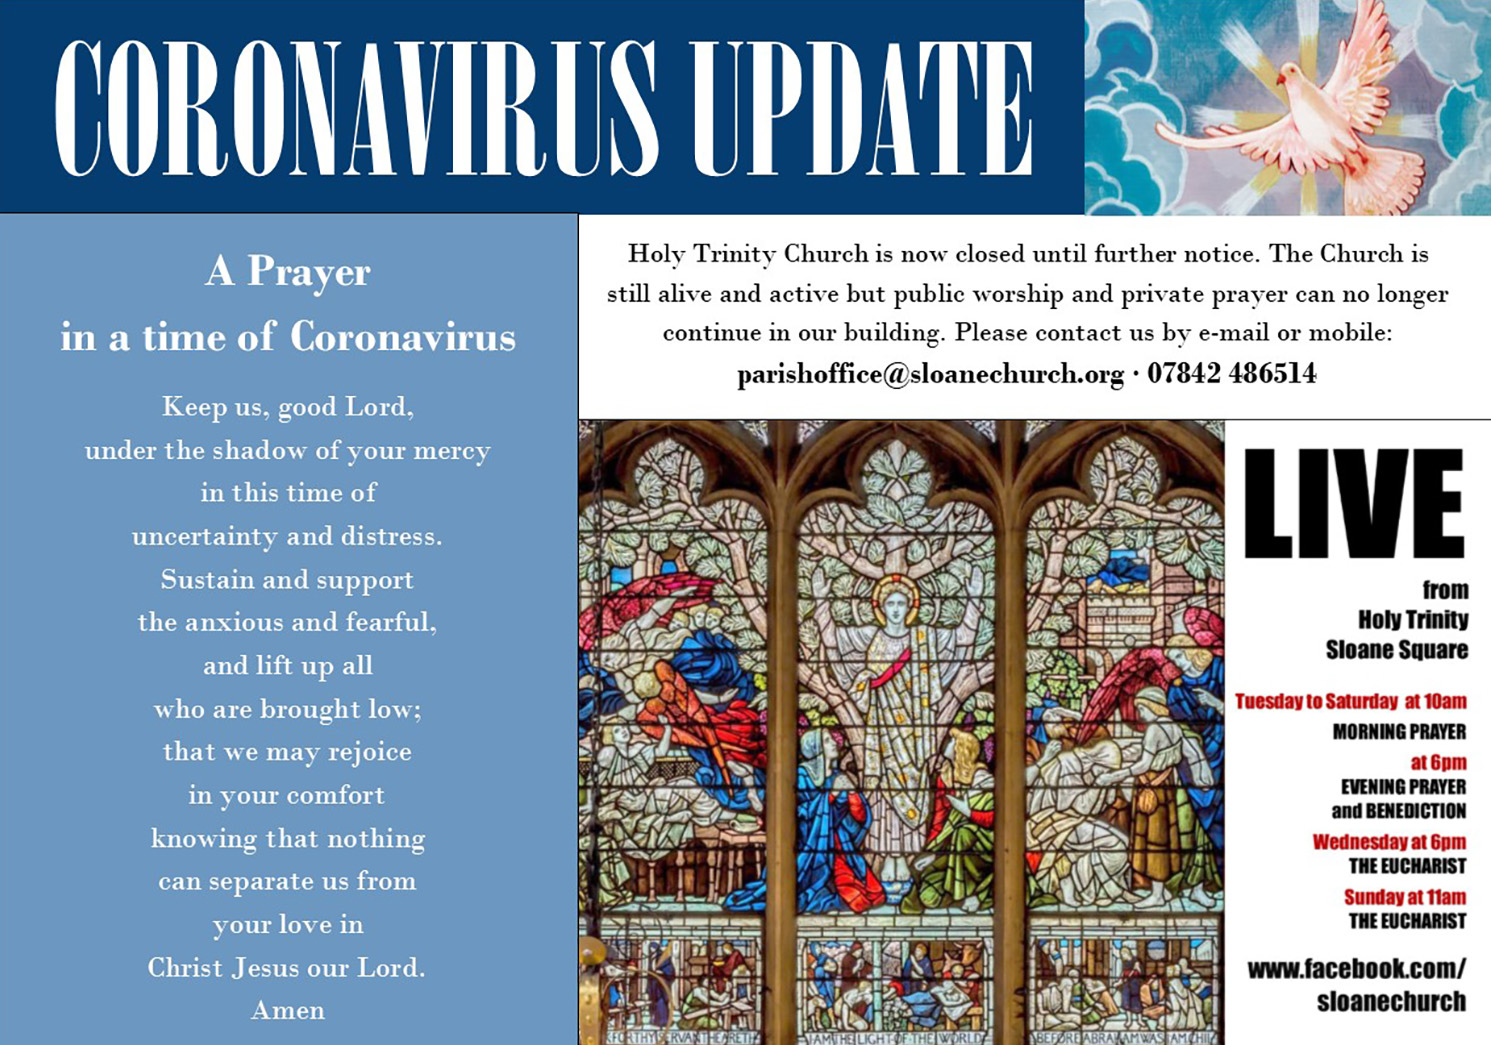 Coronavirus Update: Holy Trinity Church is now closed until further notice